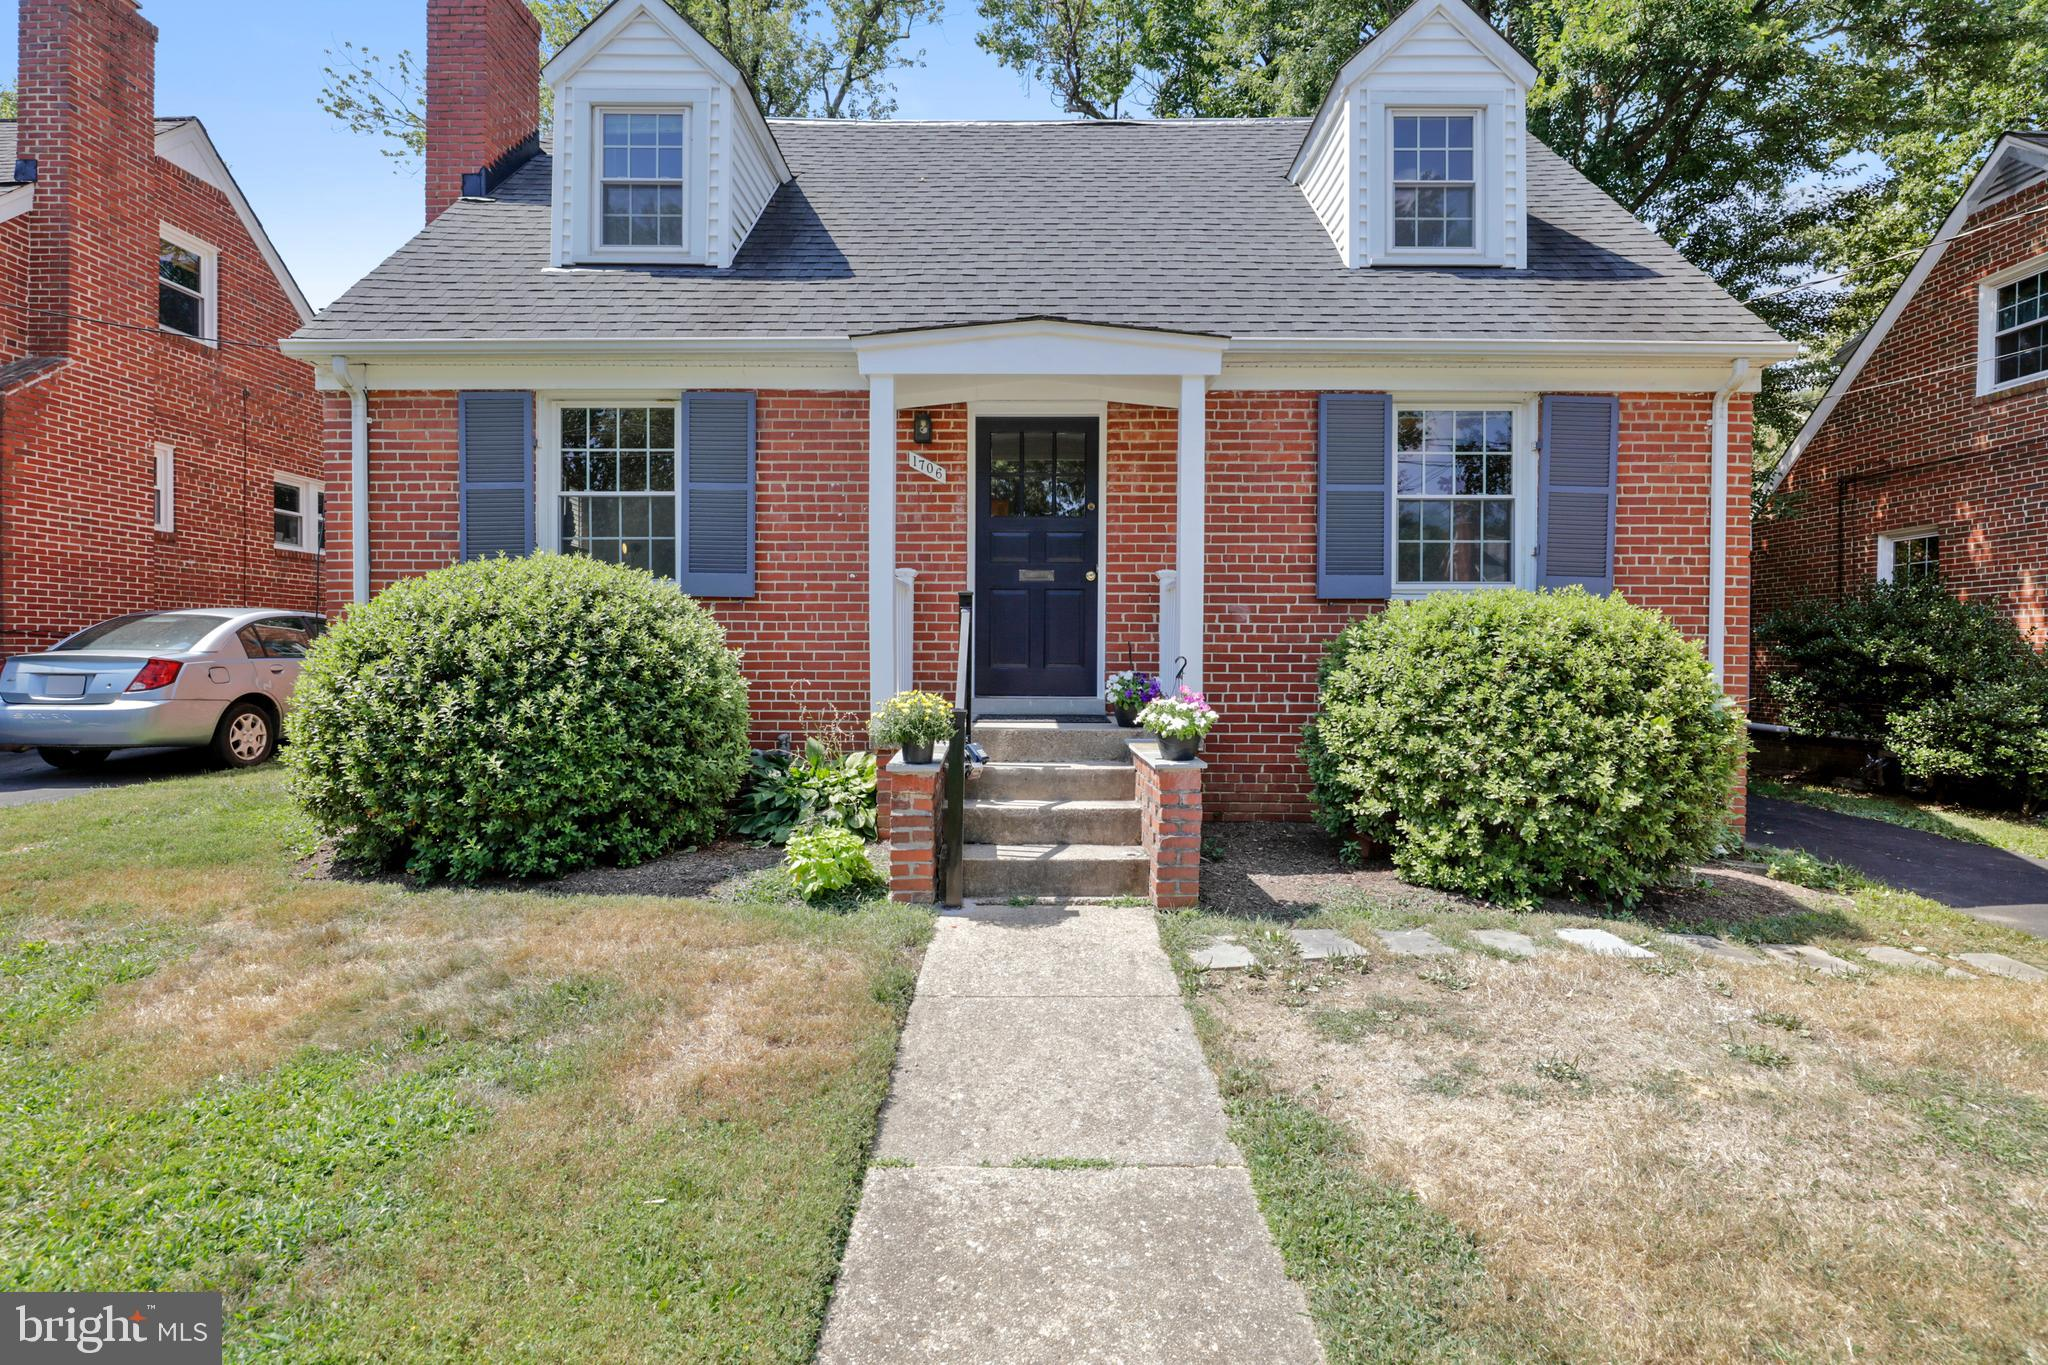 CHARMING ALL-BRICK CAPE COD IN SOUGHT-AFTER NORTH RIDGE AREA -- convenient to the Bradlee Shopping Center, plus the shops, eateries, movies, theater of Shirlington, and minutes from Old Town. Remodeled kitchen with granite counters and high-end appliances by GE and Fisher & Paykel, open to dining room. Both baths have also been stylishly remodeled. Hardwood floors are newly refinished, and the HVAC system, water heater, and roof are all recently replaced. The full, unfinished basement was professionally waterproofed in 2019 with a warranty that is transferable to the new buyer. The back yard was professionally landscaped, and includes a deck with hot tub and a lovely stone patio.